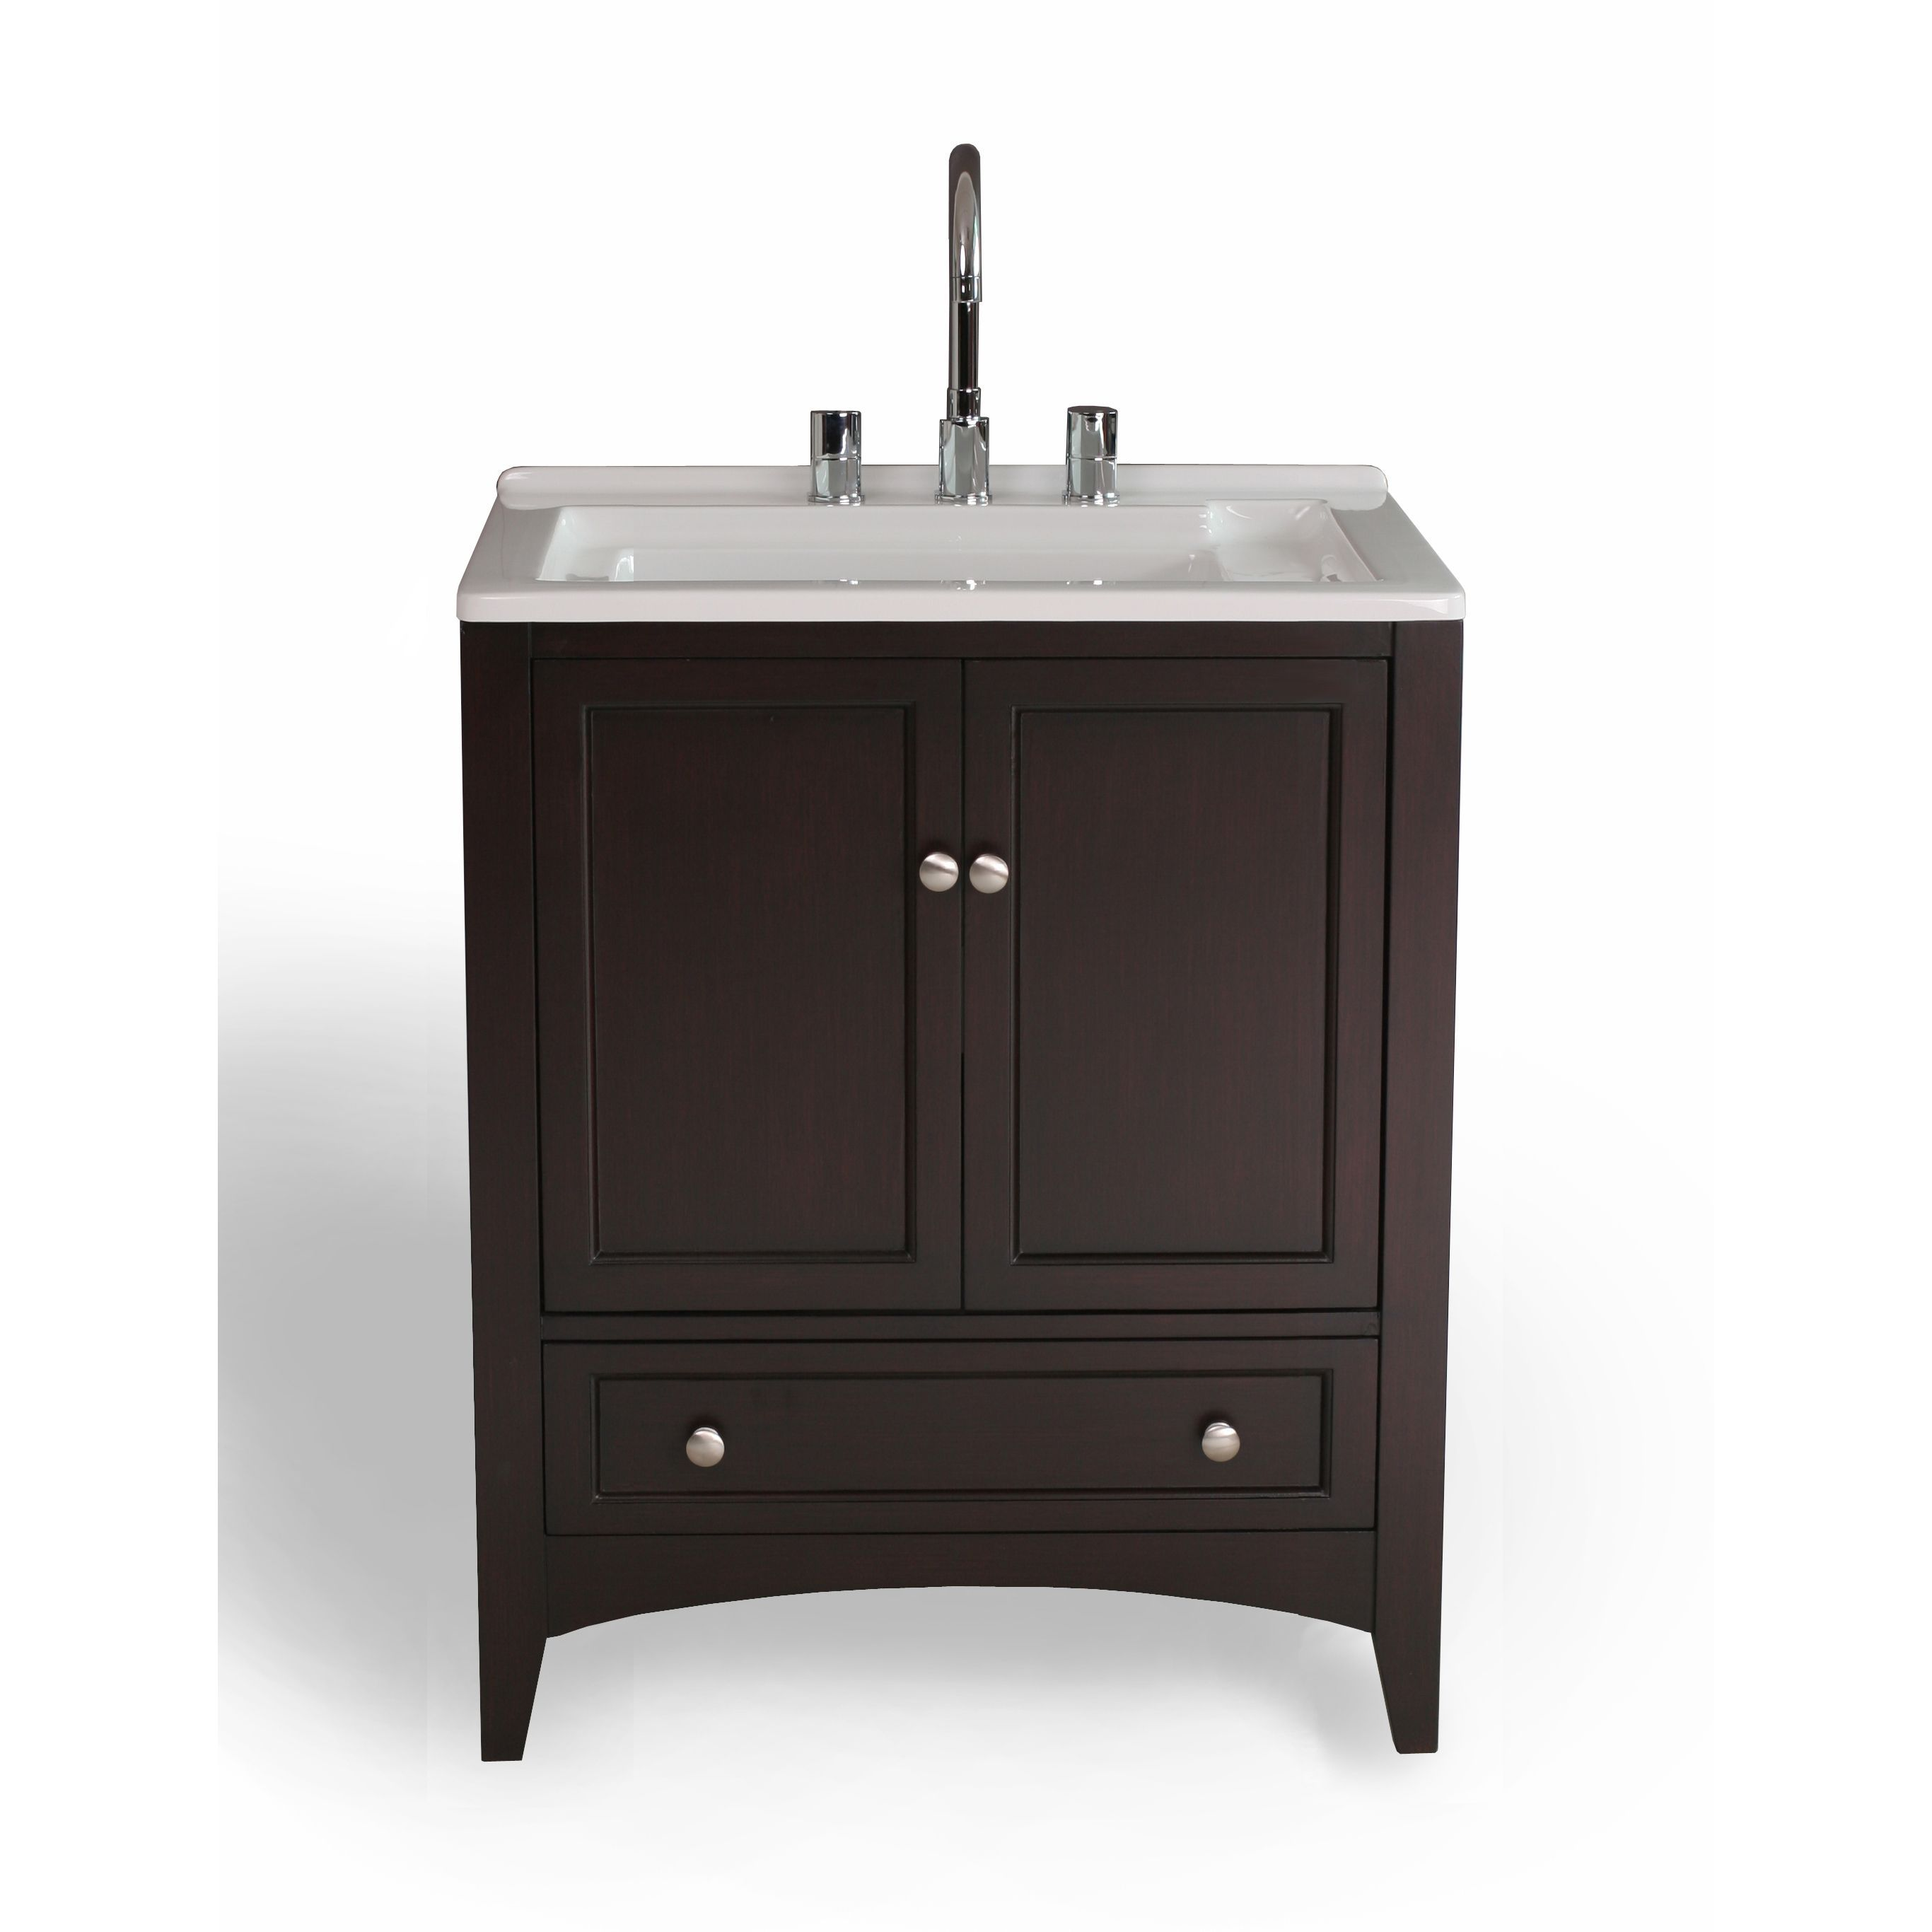 27 Inch Espresso Laundry Single Sink Vanity Ping The Best Deals On Bathroom Vanities